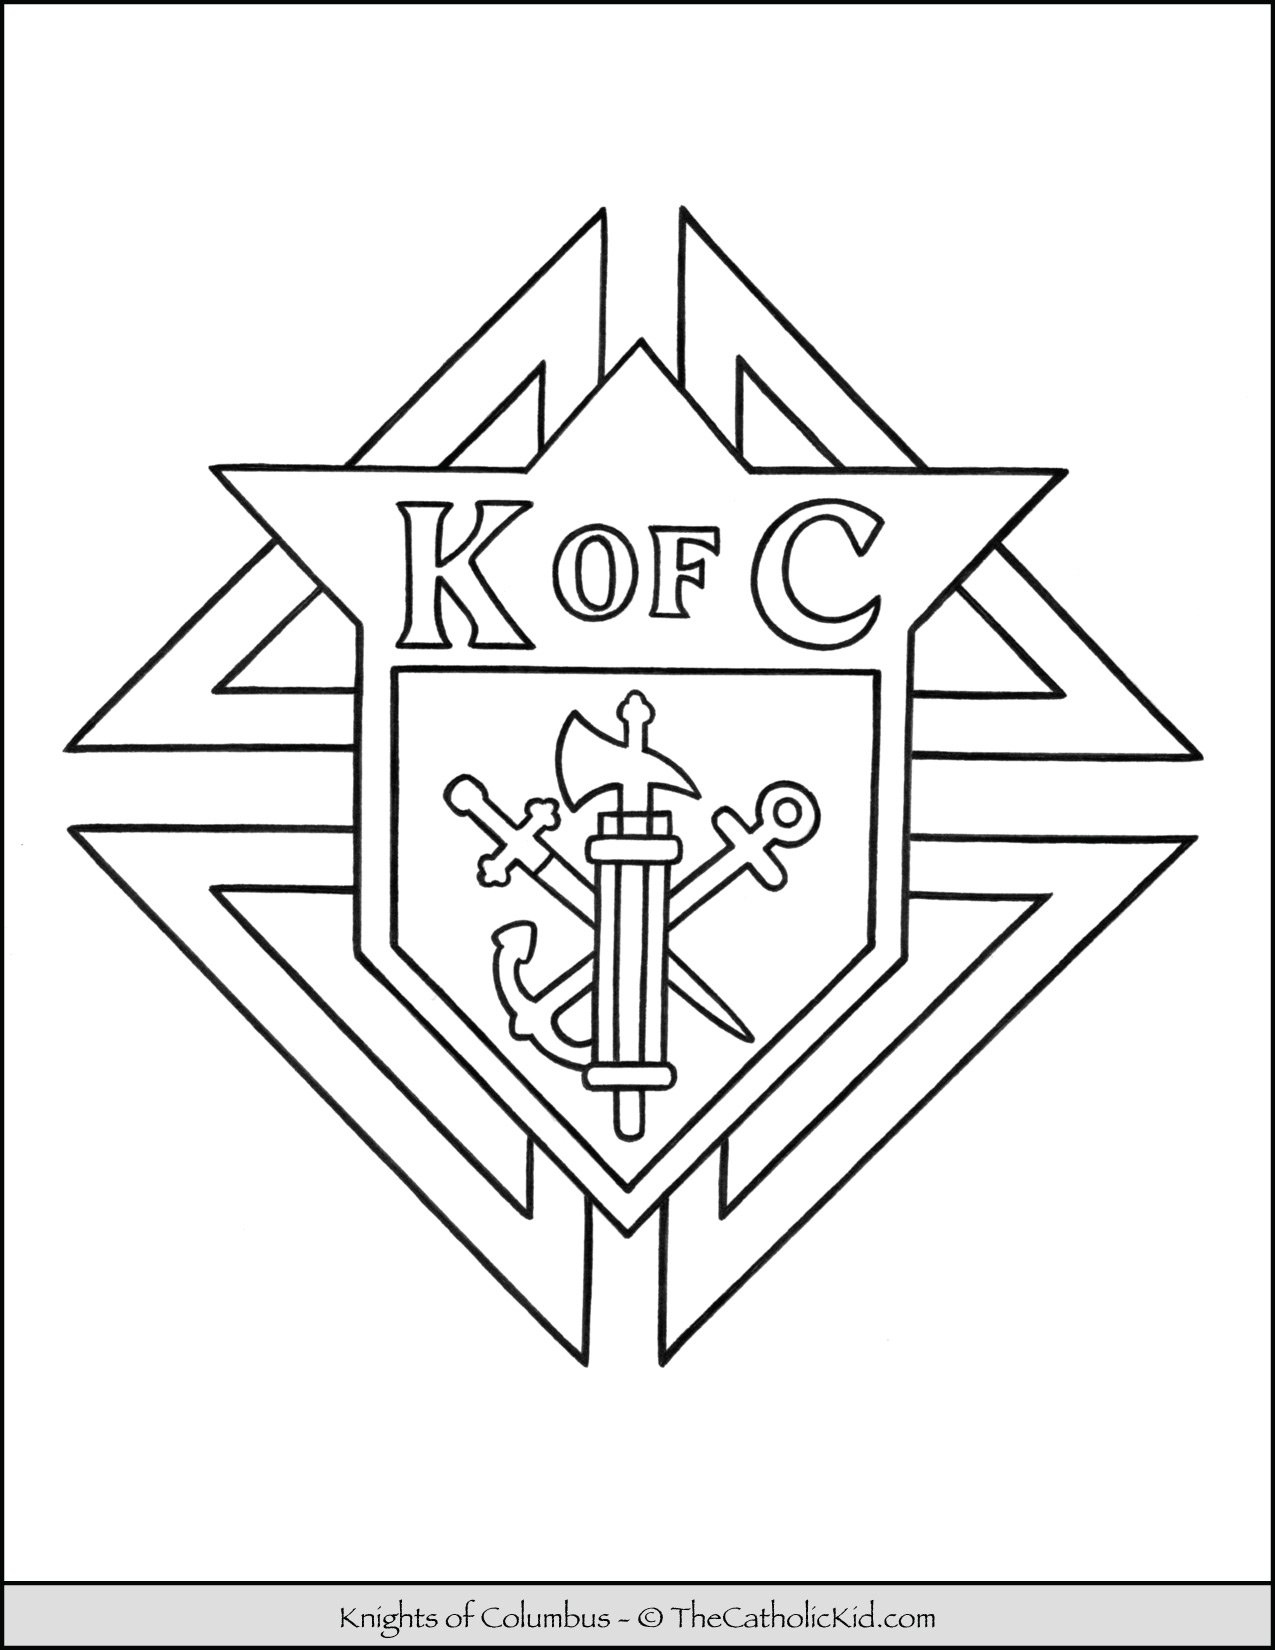 Knights of Columbus Logo Coloring Page